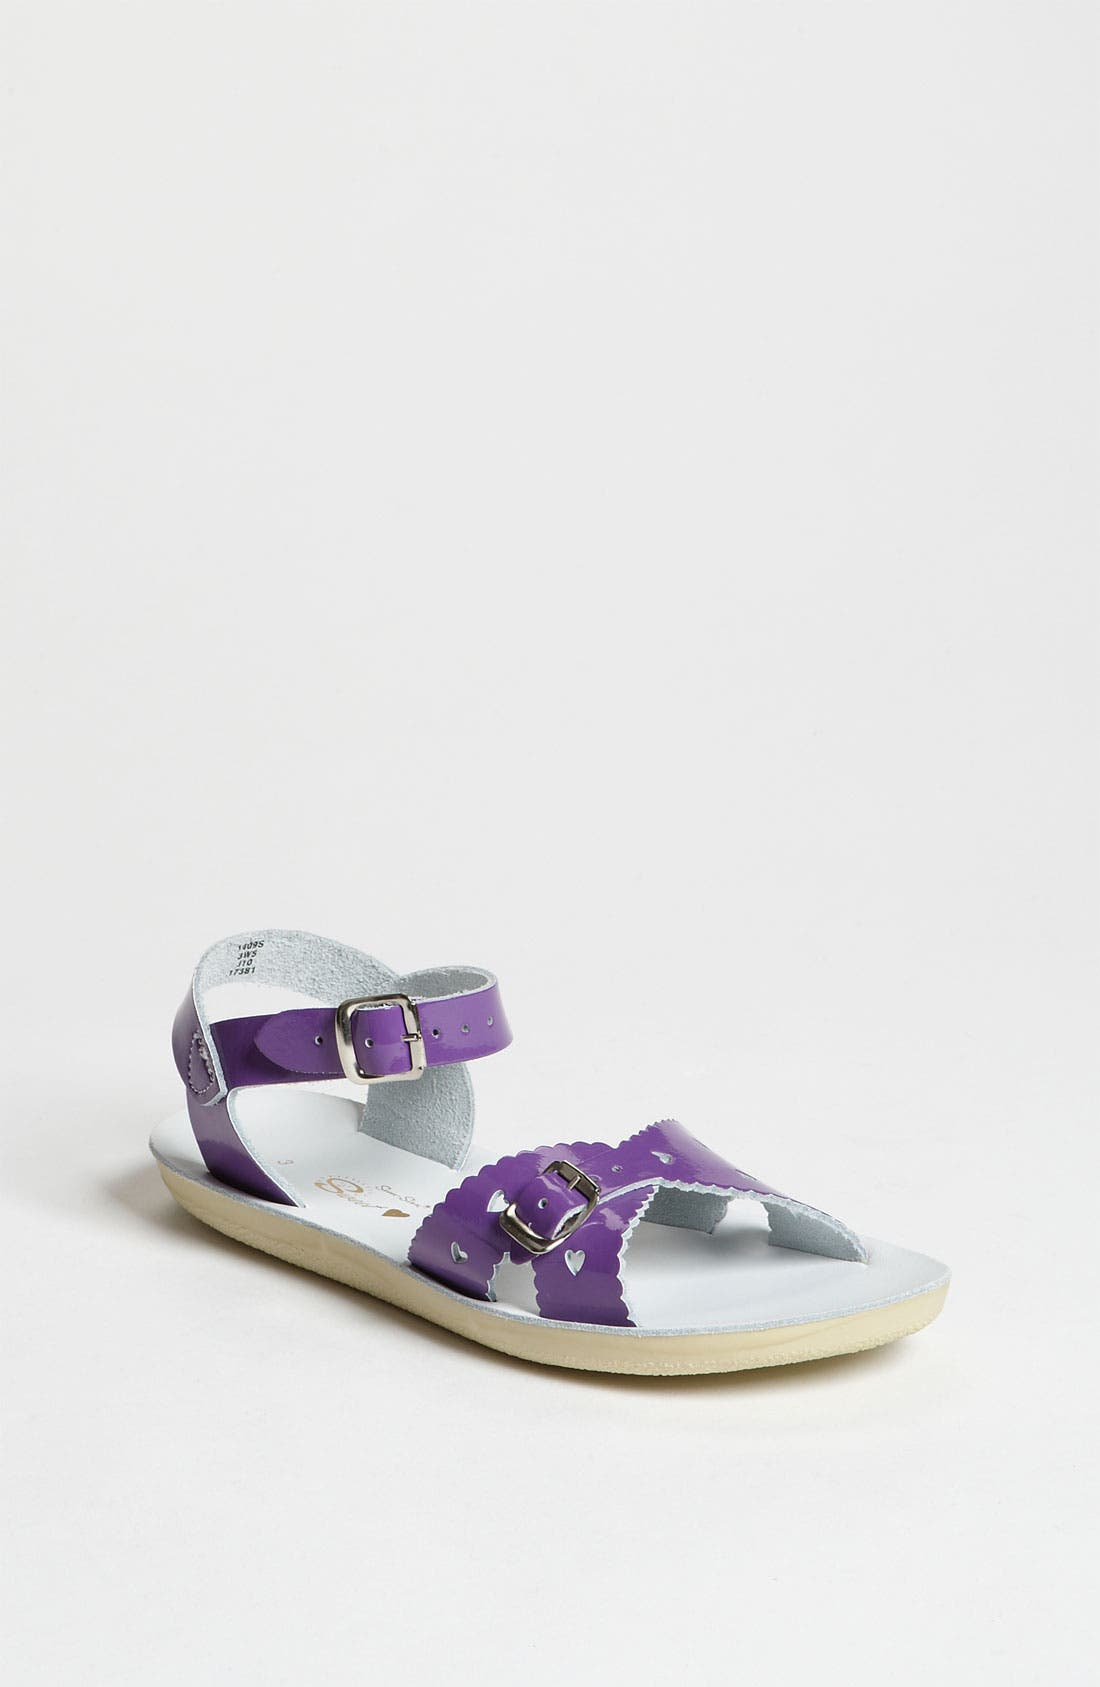 Alternate Image 1 Selected - Salt Water Sandals by Hoy 'Sweetheart' Sandal (Walker, Toddler & Little Kid)